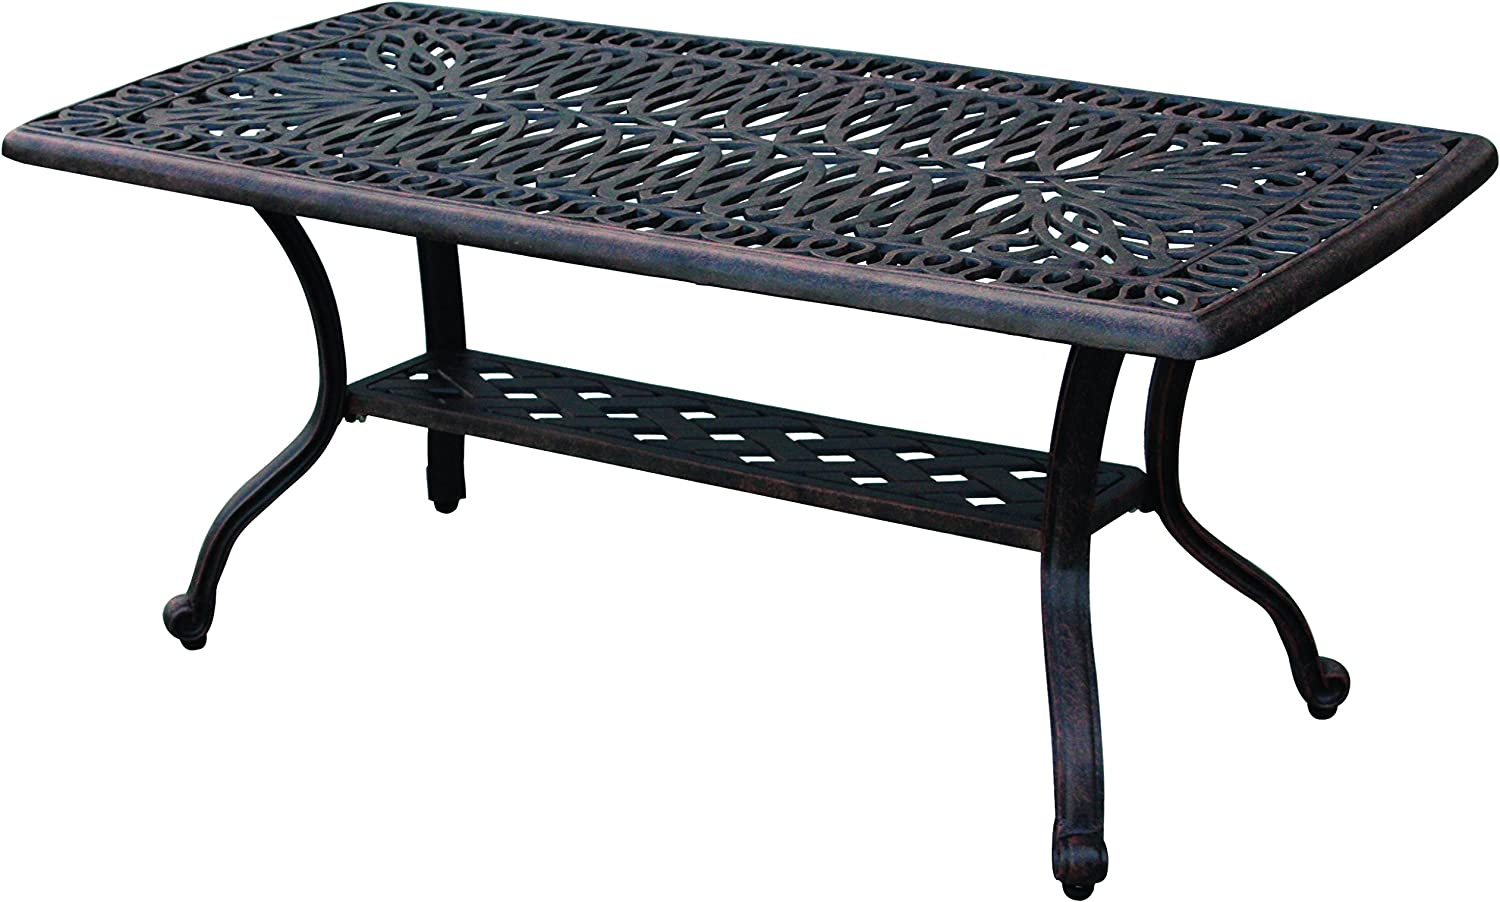 Darlee Elisabeth Cast Aluminum Rectangular Coffee Table, 21 x 42 Antique Bronze Finish